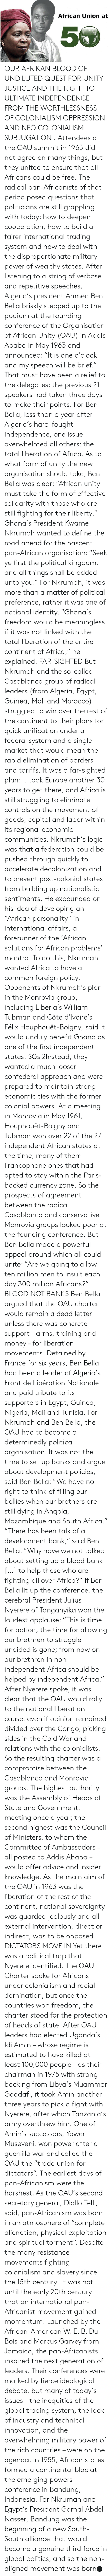 """Advice, Africa, and Arguing: African Union at  5 OUR AFRIKAN BLOOD OF UNDILUTED QUEST FOR UNITY JUSTICE AND THE RIGHT TO ULTIMATE INDEPENDENCE FROM THE WORTHLESSNESS OF COLONIALISM OPPRESSION AND NEO COLONIALISM SUBJUGATION .  Attendees at the OAU summit in 1963 did not agree on many things, but they united to ensure that all Africans could be free.  The radical pan-Africanists of that period posed questions that politicians are still grappling with today: how to deepen cooperation, how to build a fairer international trading system and how to deal with the disproportionate military power of wealthy states.  After listening to a string of verbose and repetitive speeches, Algeria's president Ahmed Ben Bella briskly stepped up to the podium at the founding conference of the Organisation of African Unity (OAU) in Addis Ababa in May 1963 and announced: """"It is one o'clock and my speech will be brief."""" That must have been a relief to the delegates: the previous 21 speakers had taken three days to make their points.  For Ben Bella, less than a year after Algeria's hard-fought independence, one issue overwhelmed all others: the total liberation of Africa. As to what form of unity the new organisation should take, Ben Bella was clear: """"African unity must take the form of effective solidarity with those who are still fighting for their liberty."""" Ghana's President Kwame Nkrumah wanted to define the road ahead for the nascent pan-African organisation: """"Seek ye first the political kingdom, and all things shall be added unto you.""""  For Nkrumah, it was more than a matter of political preference, rather it was one of national identity. """"Ghana's freedom would be meaningless if it was not linked with the total liberation of the entire continent of Africa,"""" he explained.  FAR-SIGHTED  But Nkrumah and the so-called Casablanca group of radical leaders (from Algeria, Egypt, Guinea, Mali and Morocco) struggled to win over the rest of the continent to their plans for quick unification unde"""